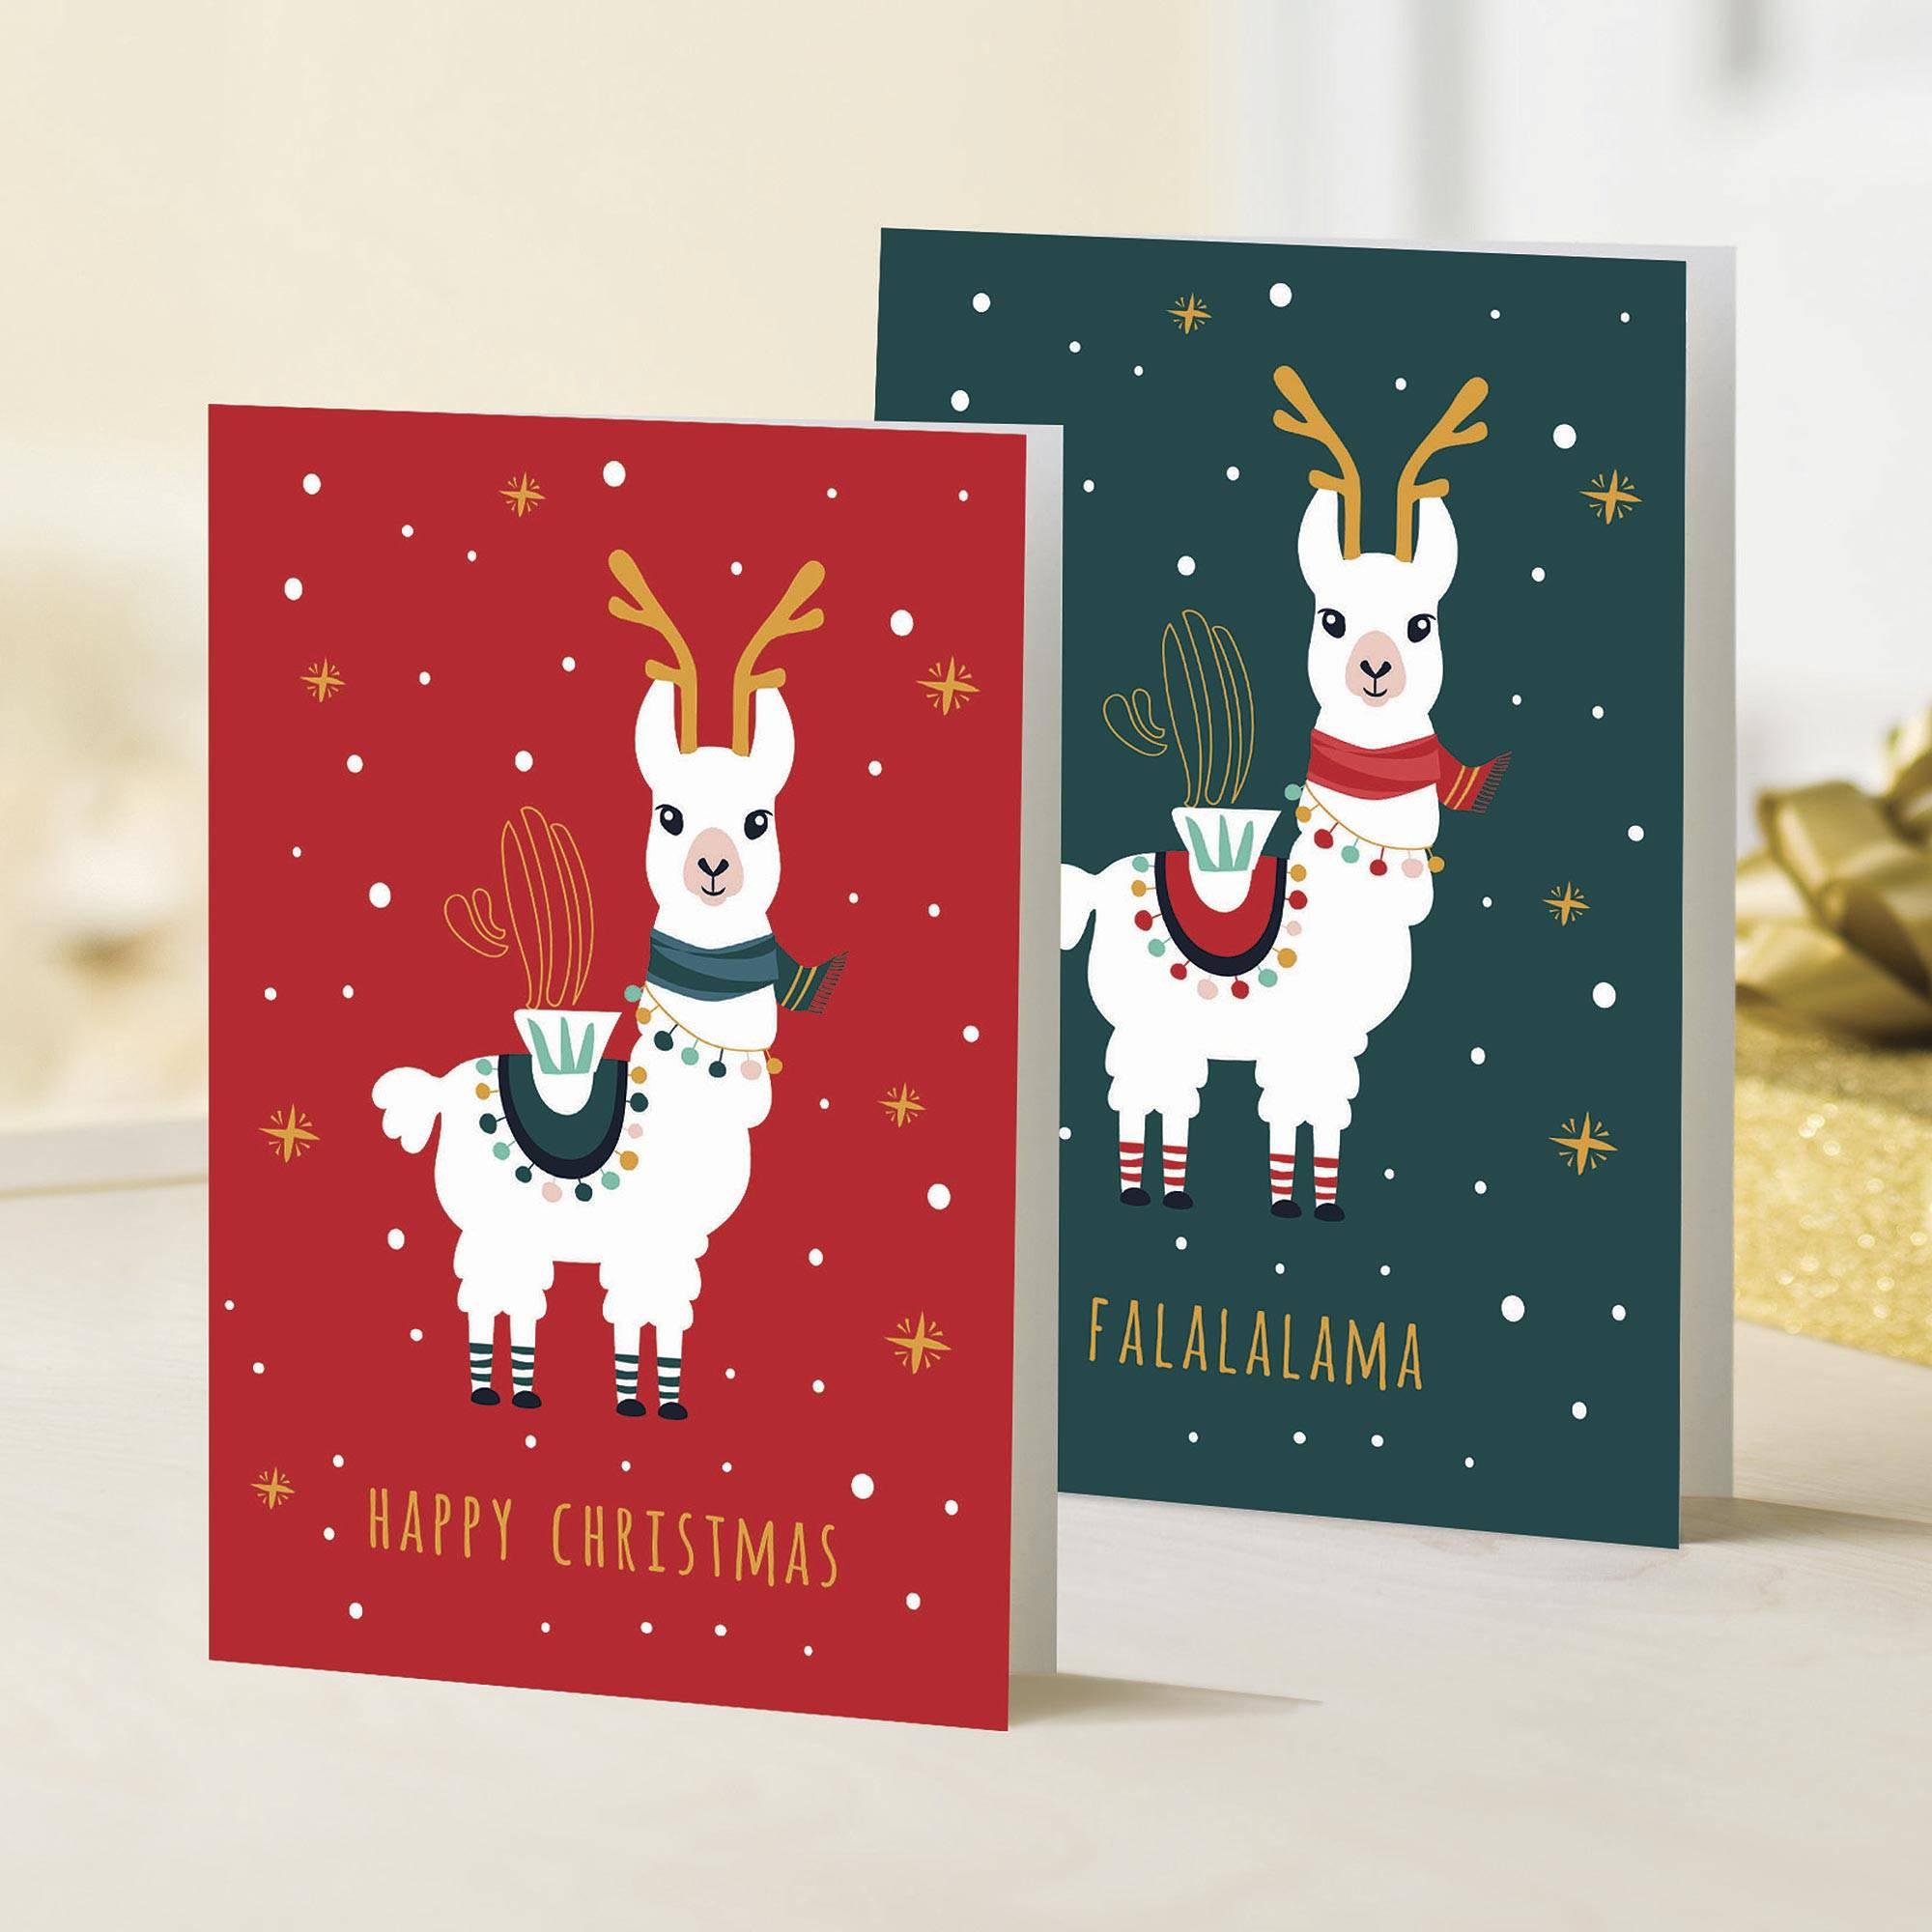 Unicef Christmas Cards.Unicef Holiday Cards With Llamas Set Of 10 Falalalama